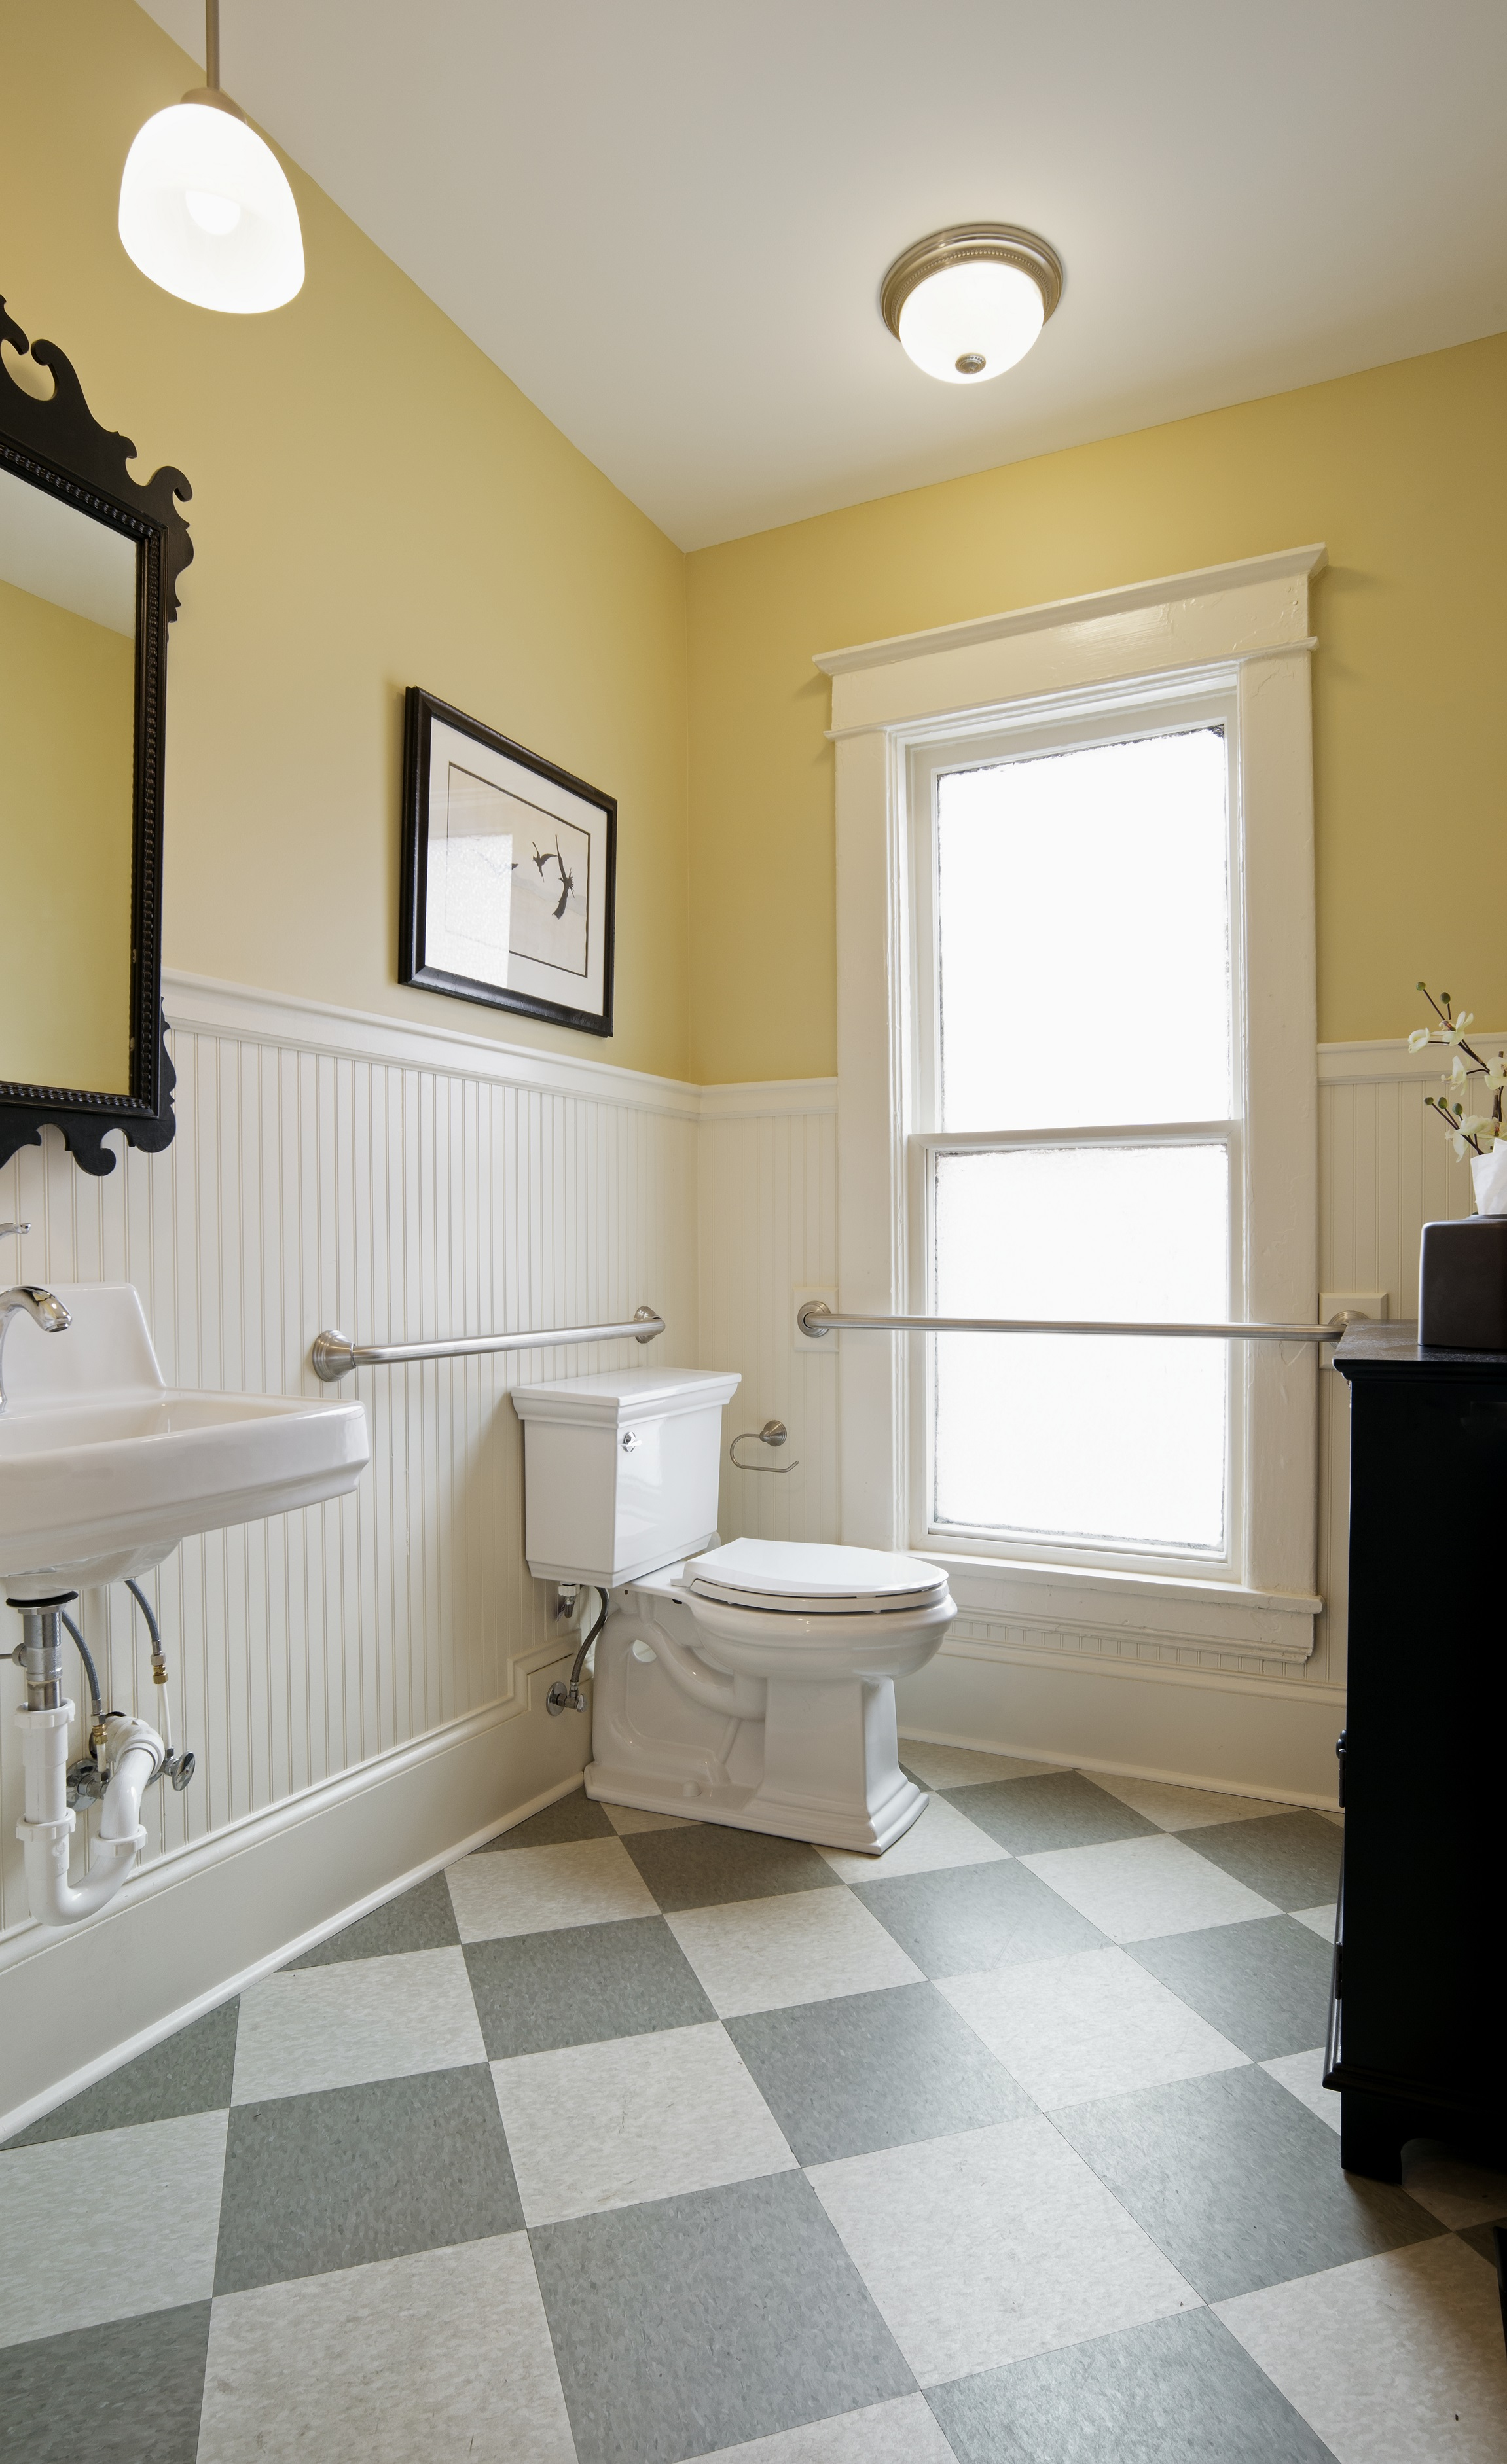 Small Bathroom Remodel By Back Construction In Lexington